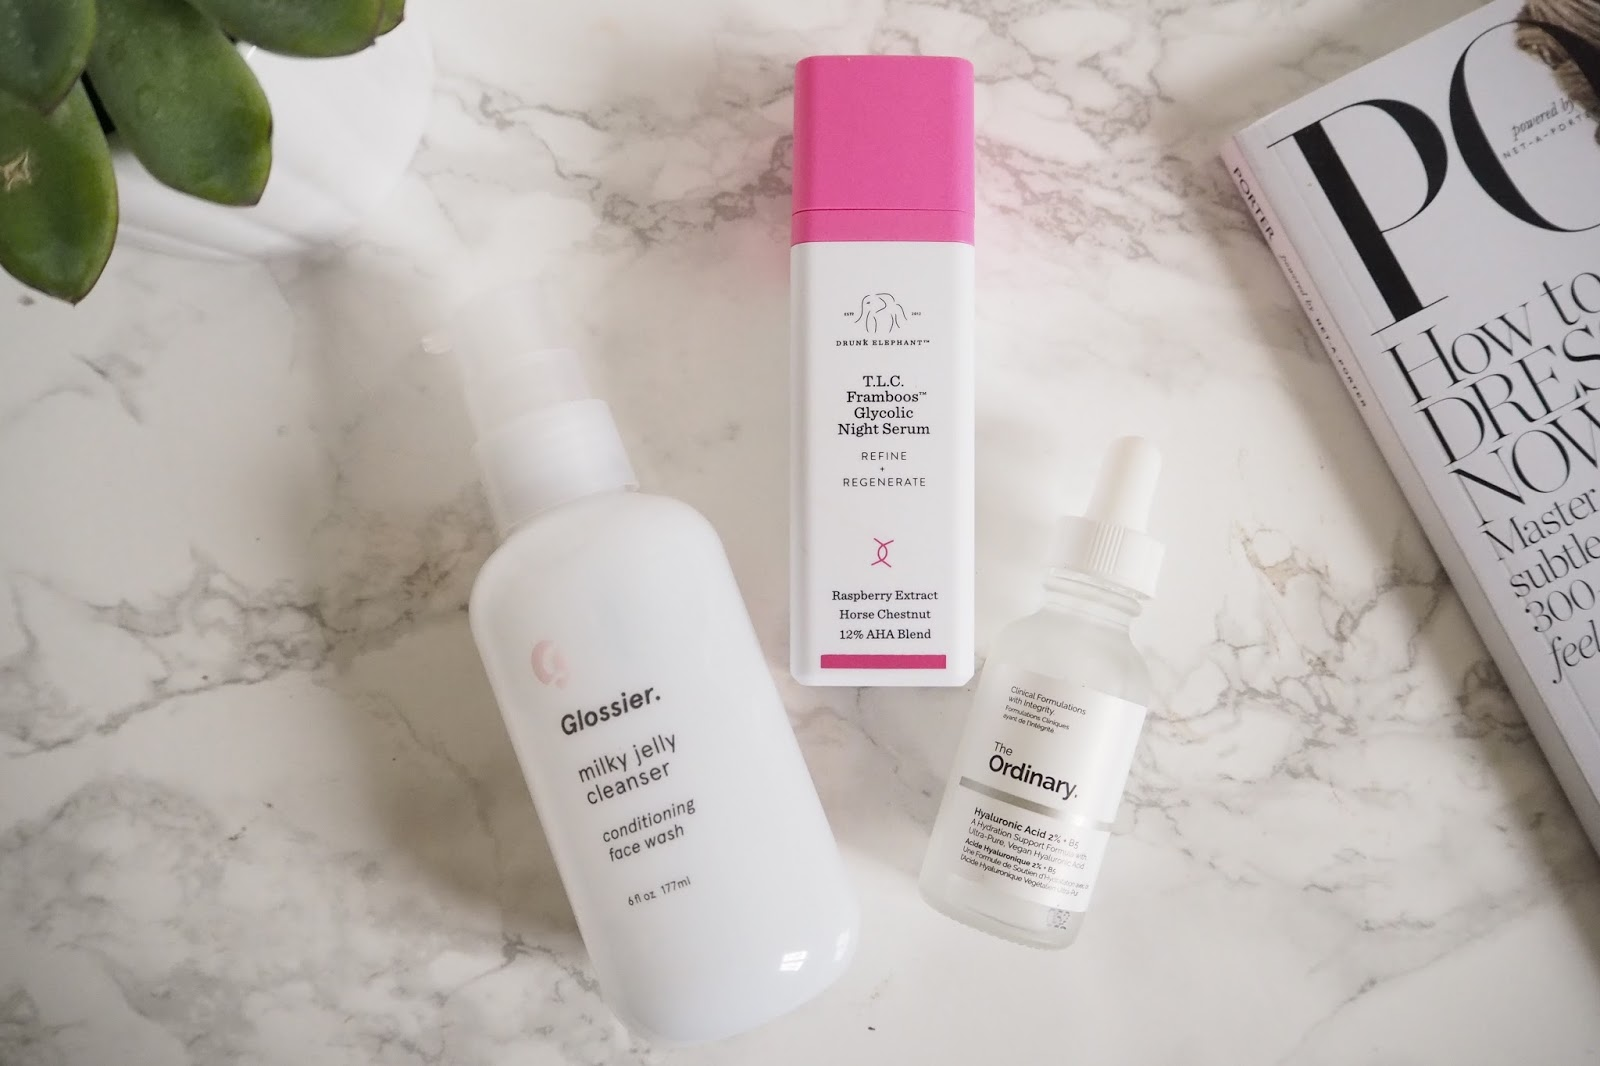 Glossier Milky Jelly Cleanse, Drunk Elephant TLC Framboos, The Ordinary Hyaluronic Acid